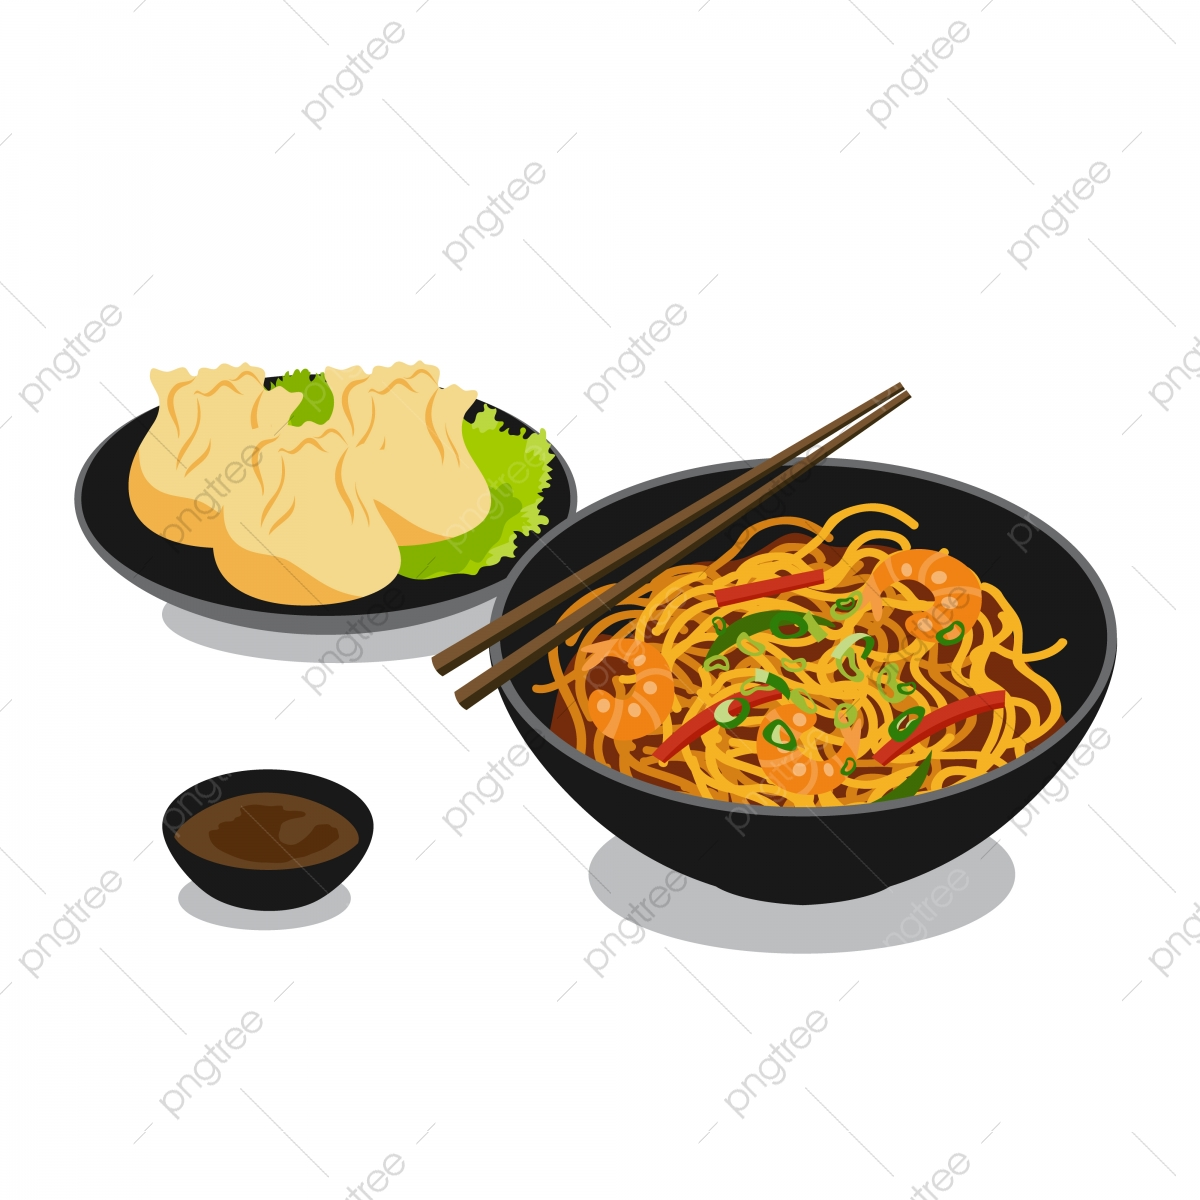 dimsum png vector psd and clipart with transparent background for free download pngtree https pngtree com freepng cuisine food noodle and dimsum illustration 5495749 html